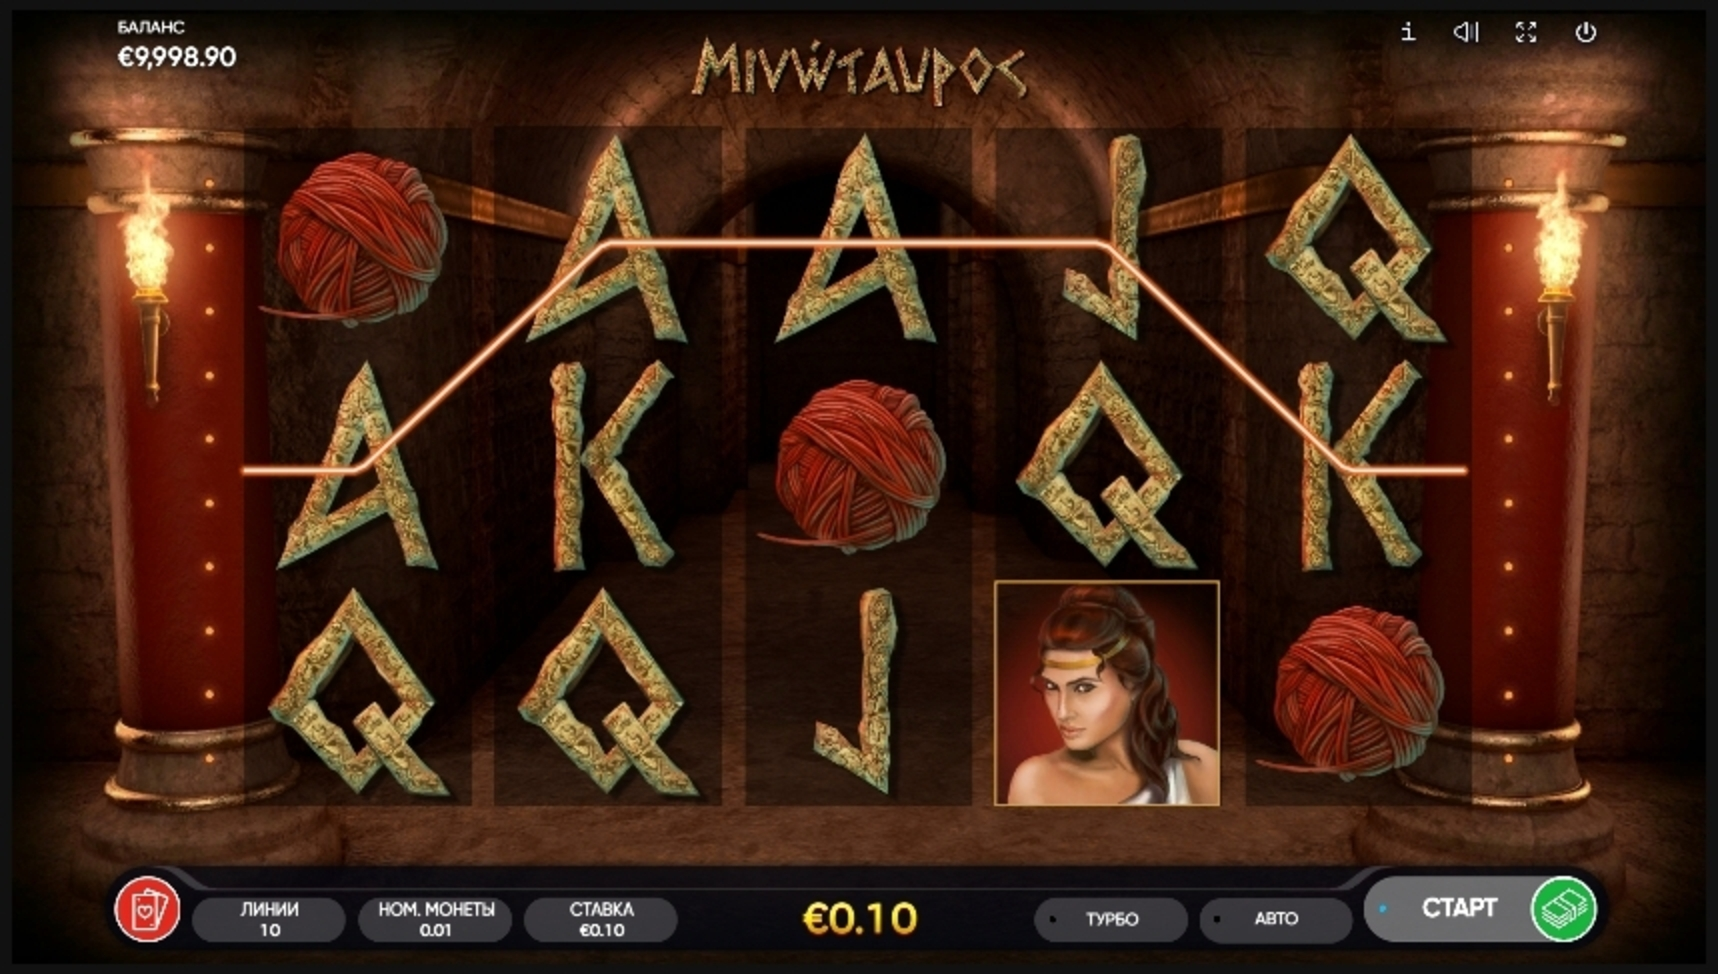 Win Money in Minotaurus Free Slot Game by Endorphina